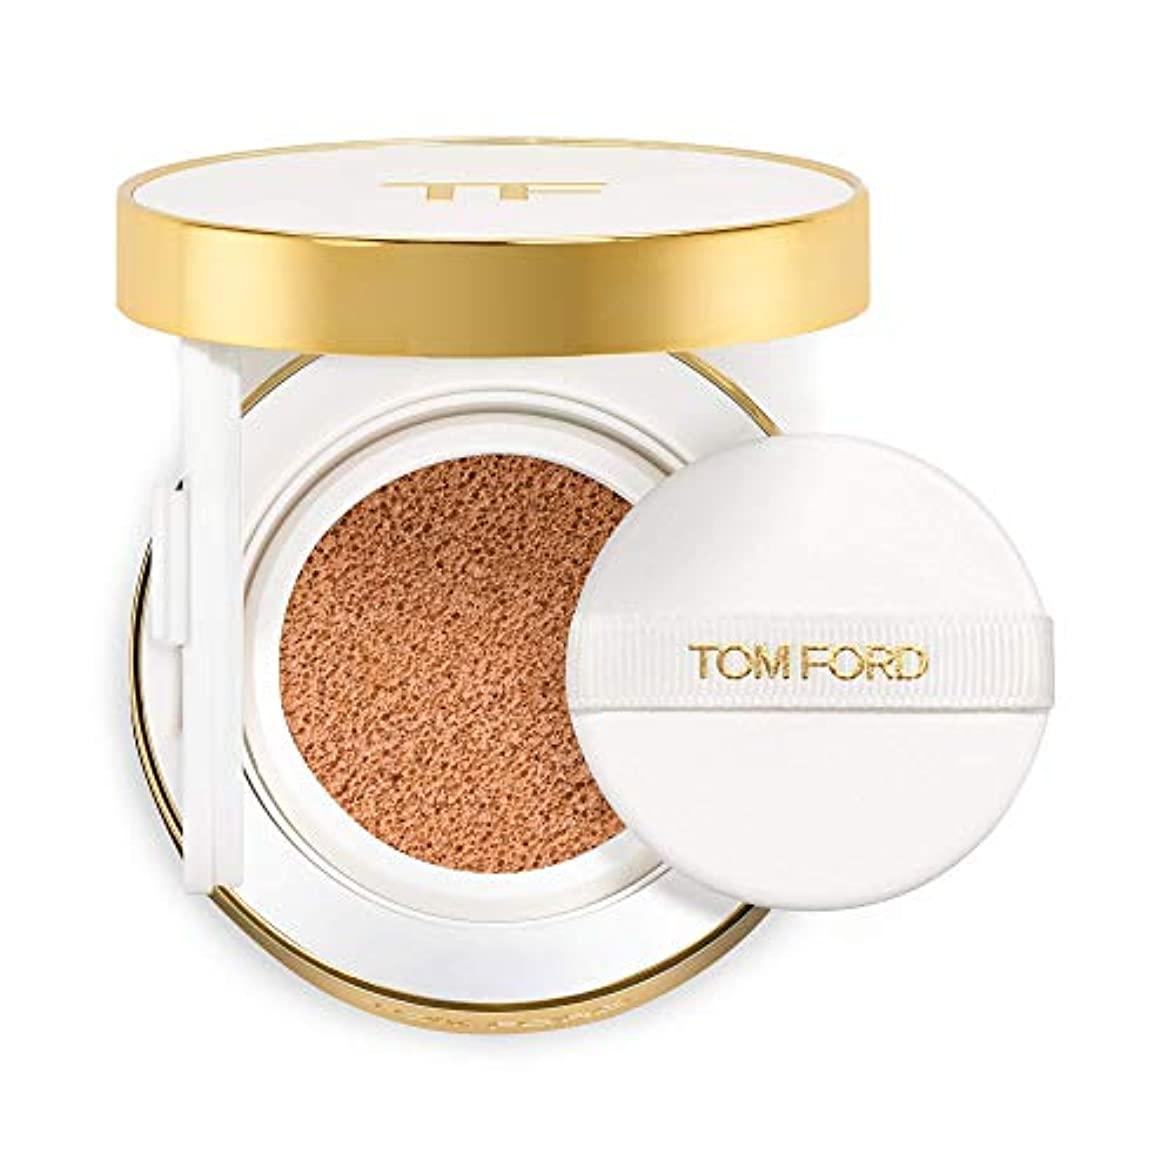 レンディション金銭的なピストルトム フォード Soleil Glow Tone Up Hydrating Cushion Compact Foundation SPF40 Refill - # 6.0 Natural 12g/0.42oz並行輸入品